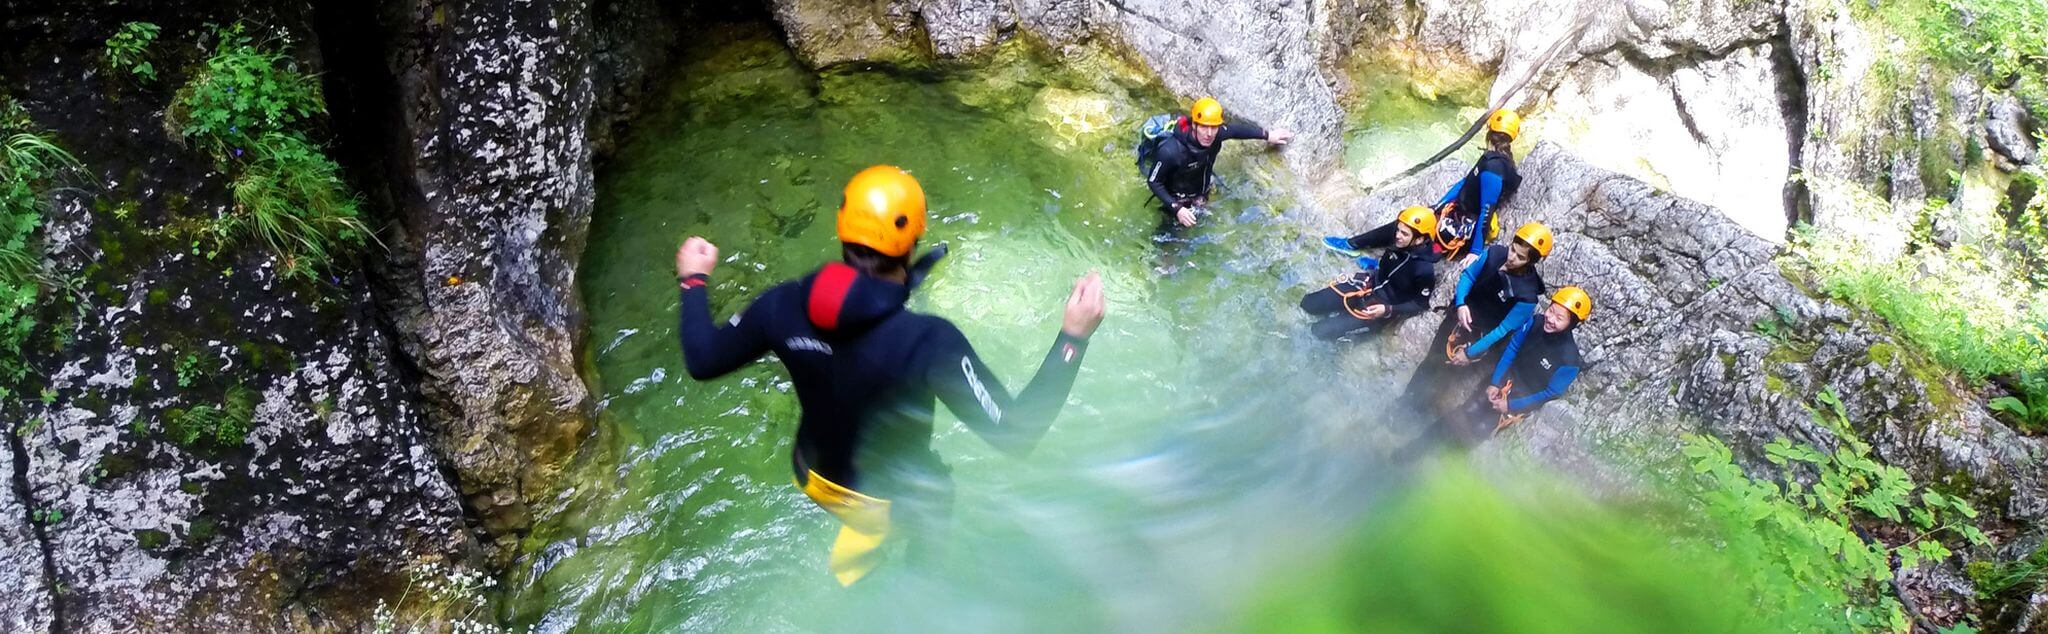 Canyoning in Cartes